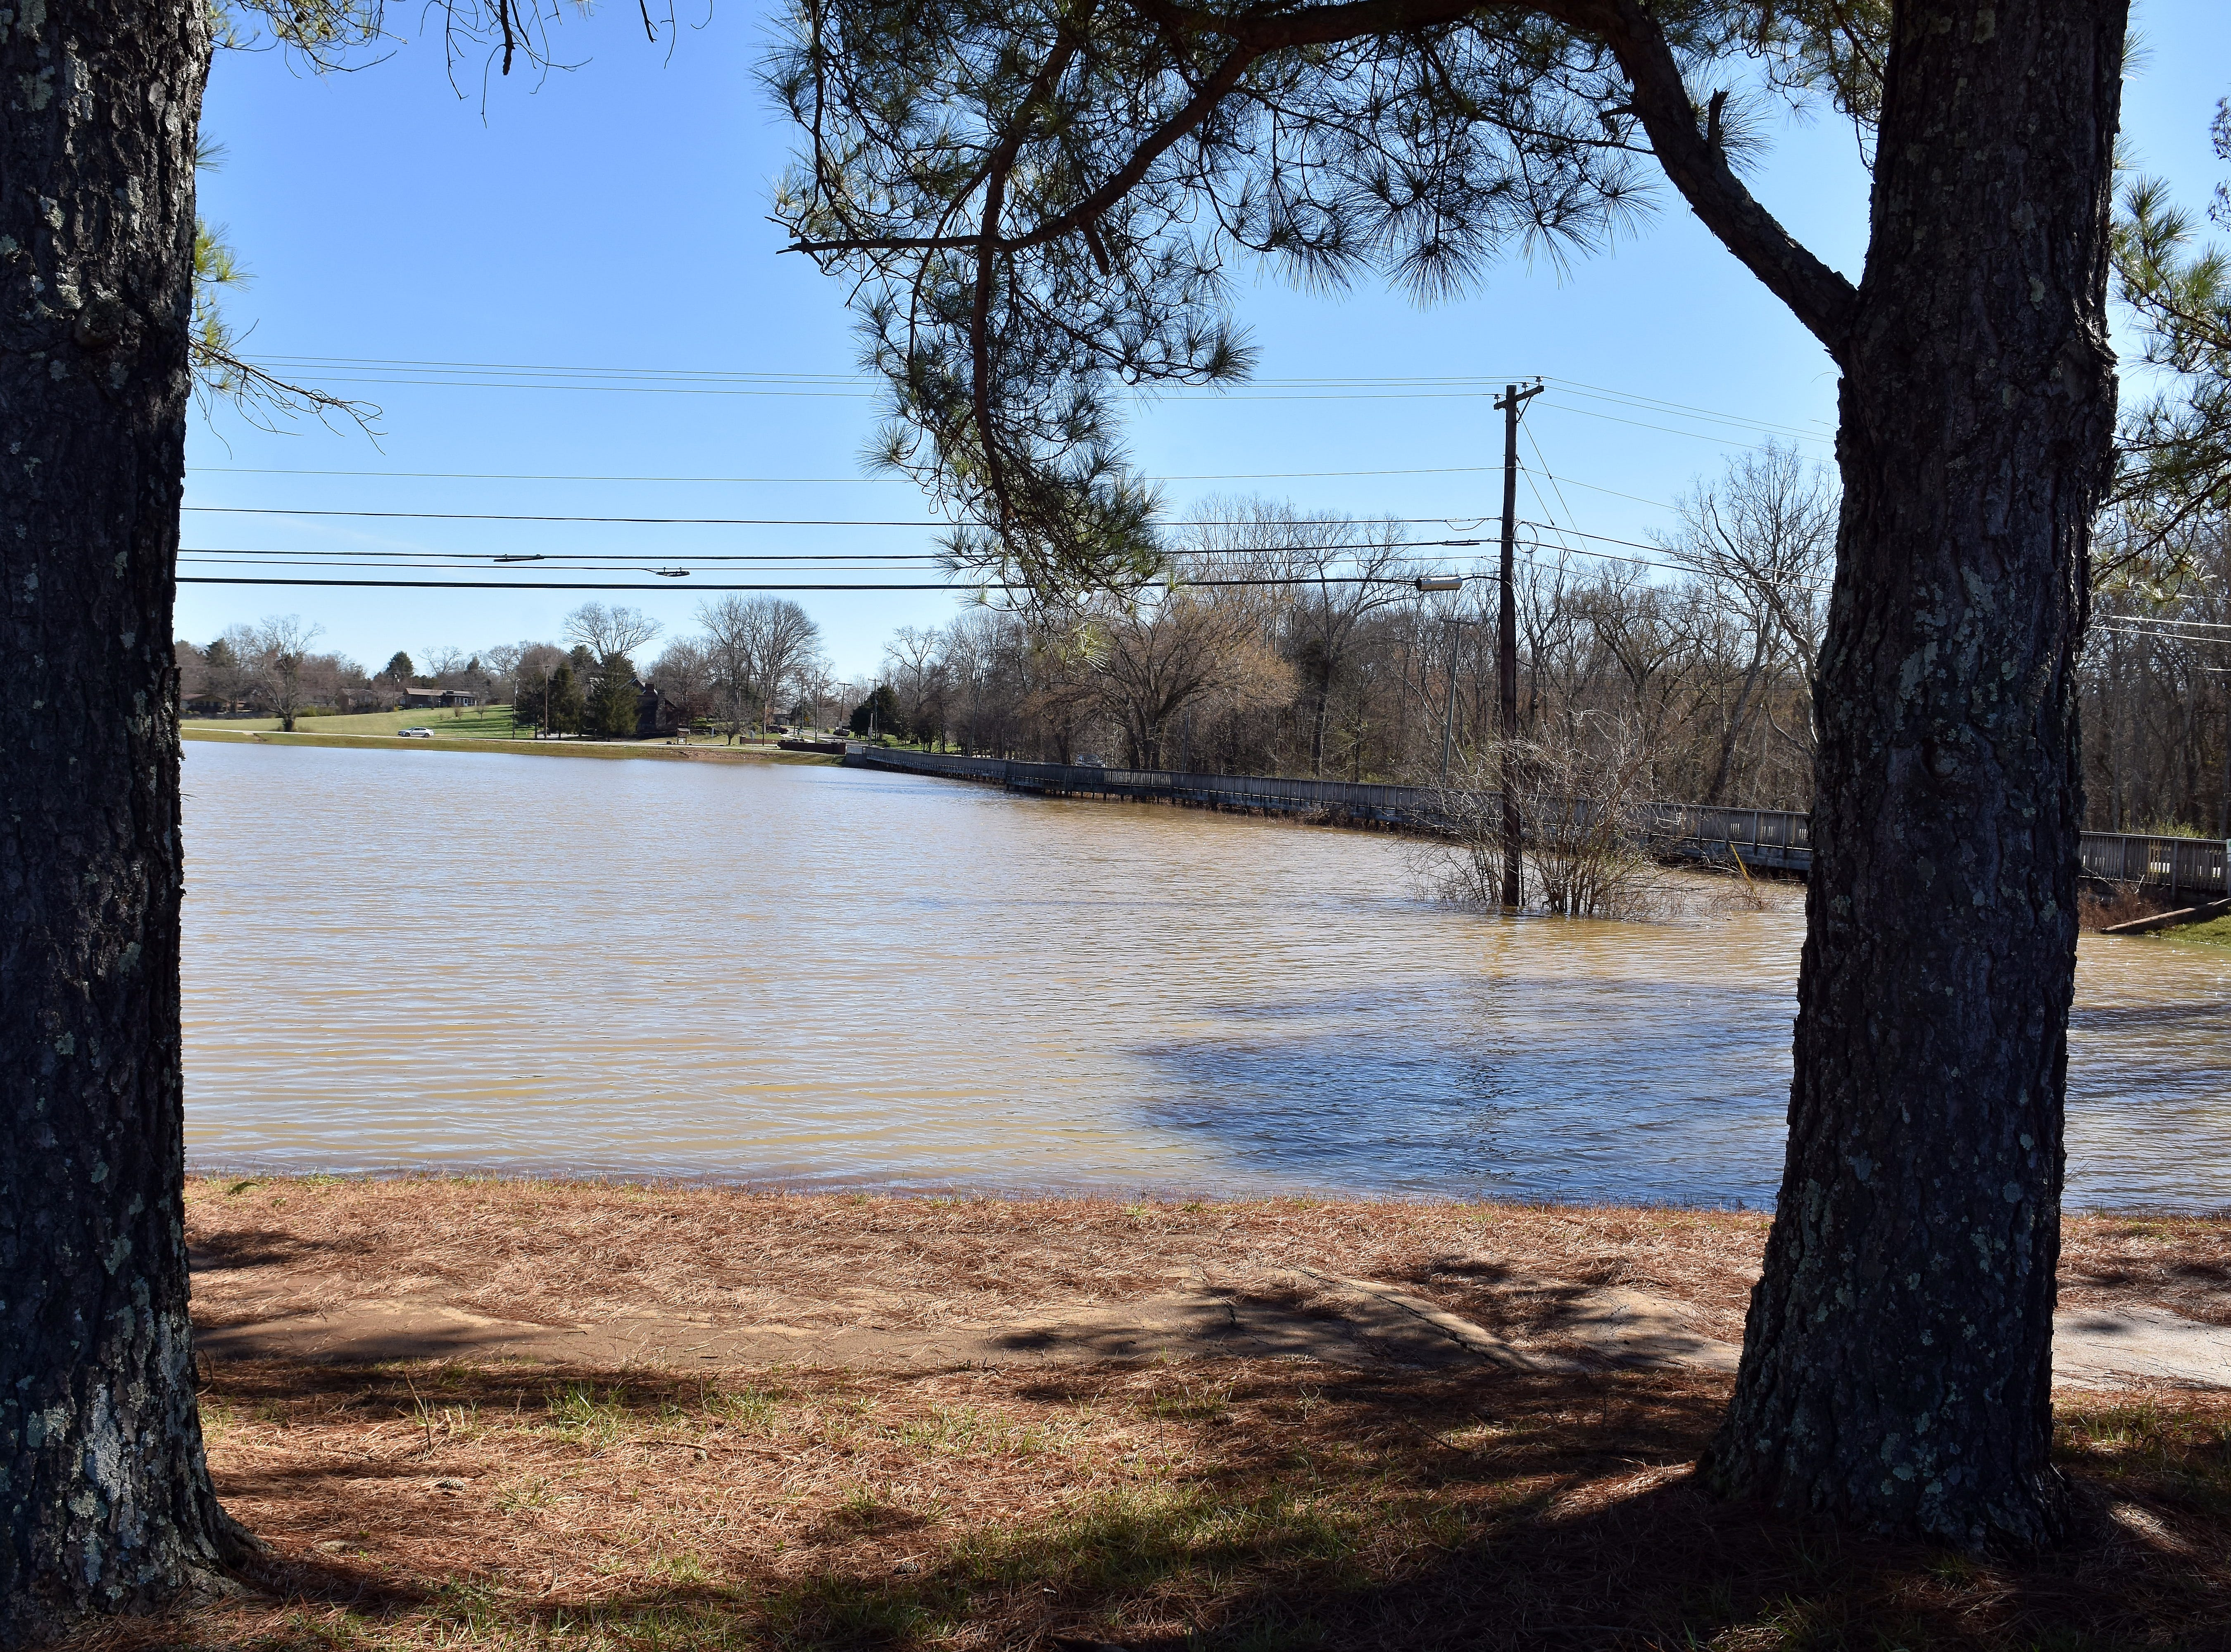 The field between Broadacres and Powell Middle School on Emory Road is filled with flood waters.